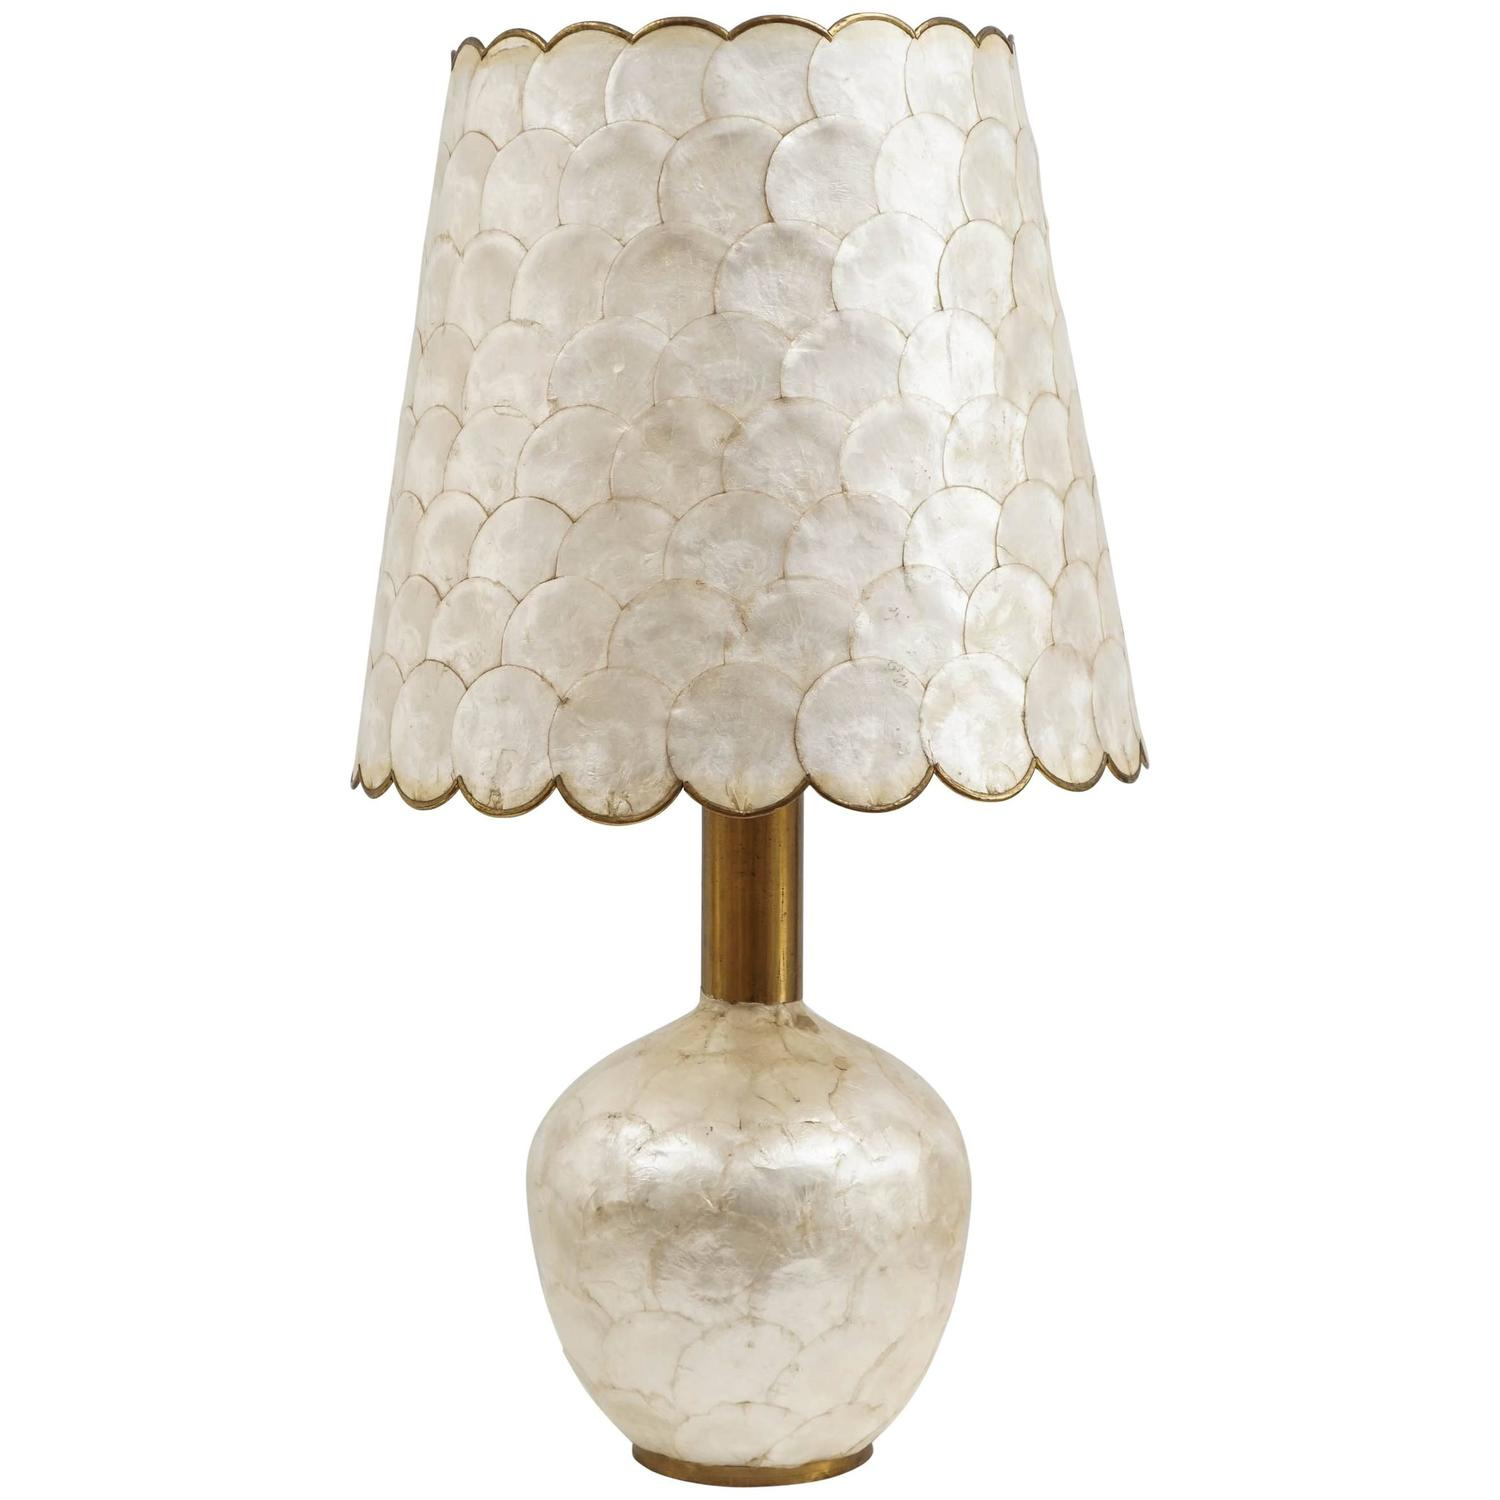 Glam Capiz Shell Table Lamp with Brass Detail, 1970s For Sale at 1stdibs - Glam Capiz Shell Table Lamp With Brass Detail, 1970s For Sale At